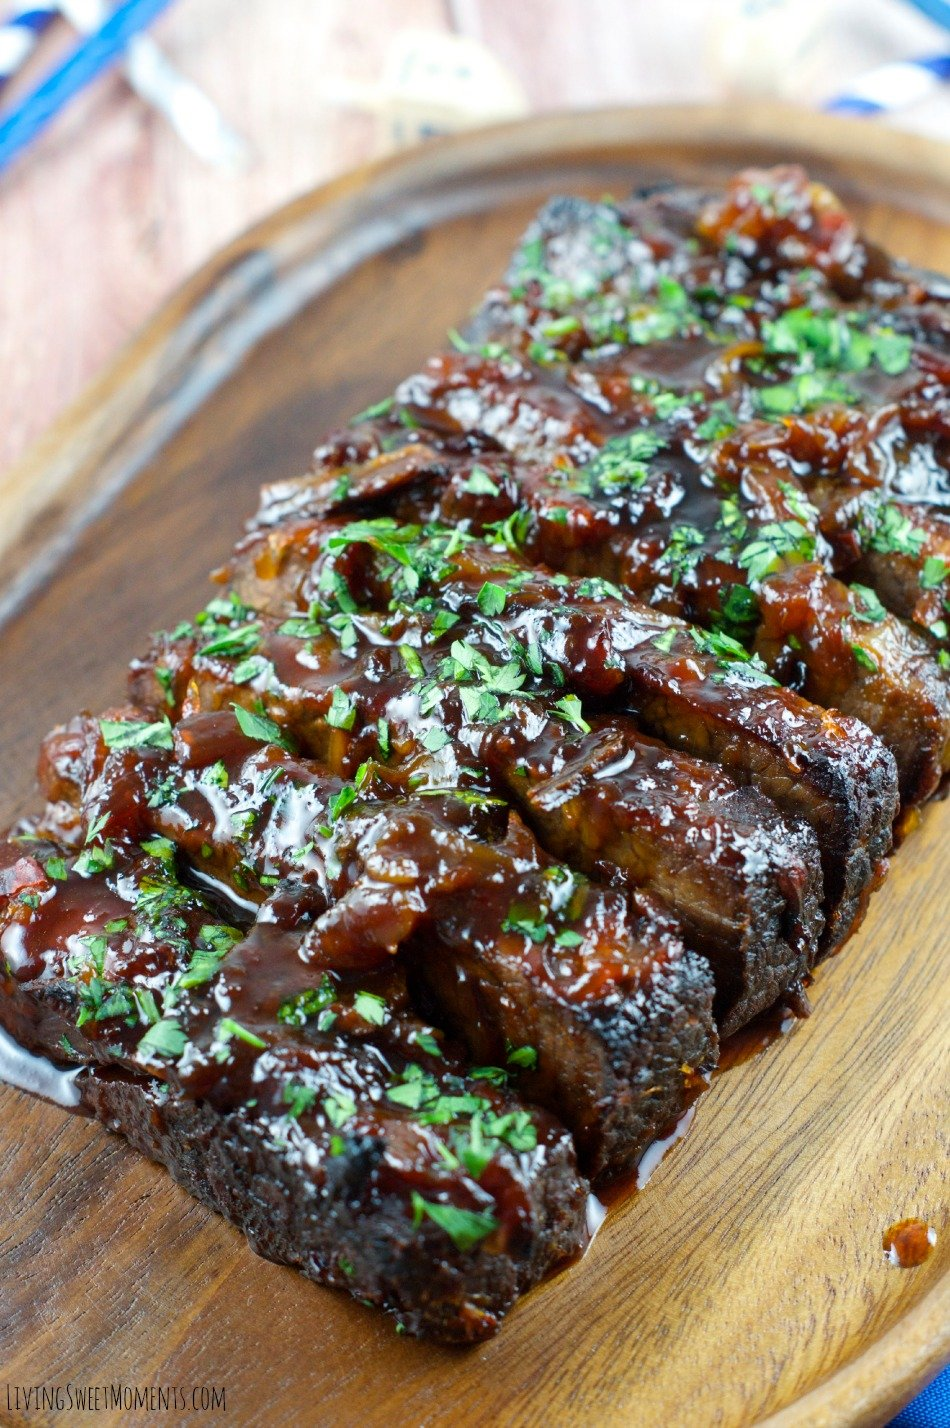 Jalapeño Brisket Recipe - This melt in your mouth Brisket is sweet with just a hint of heat. Delicious for dinner or any Holiday Occasion